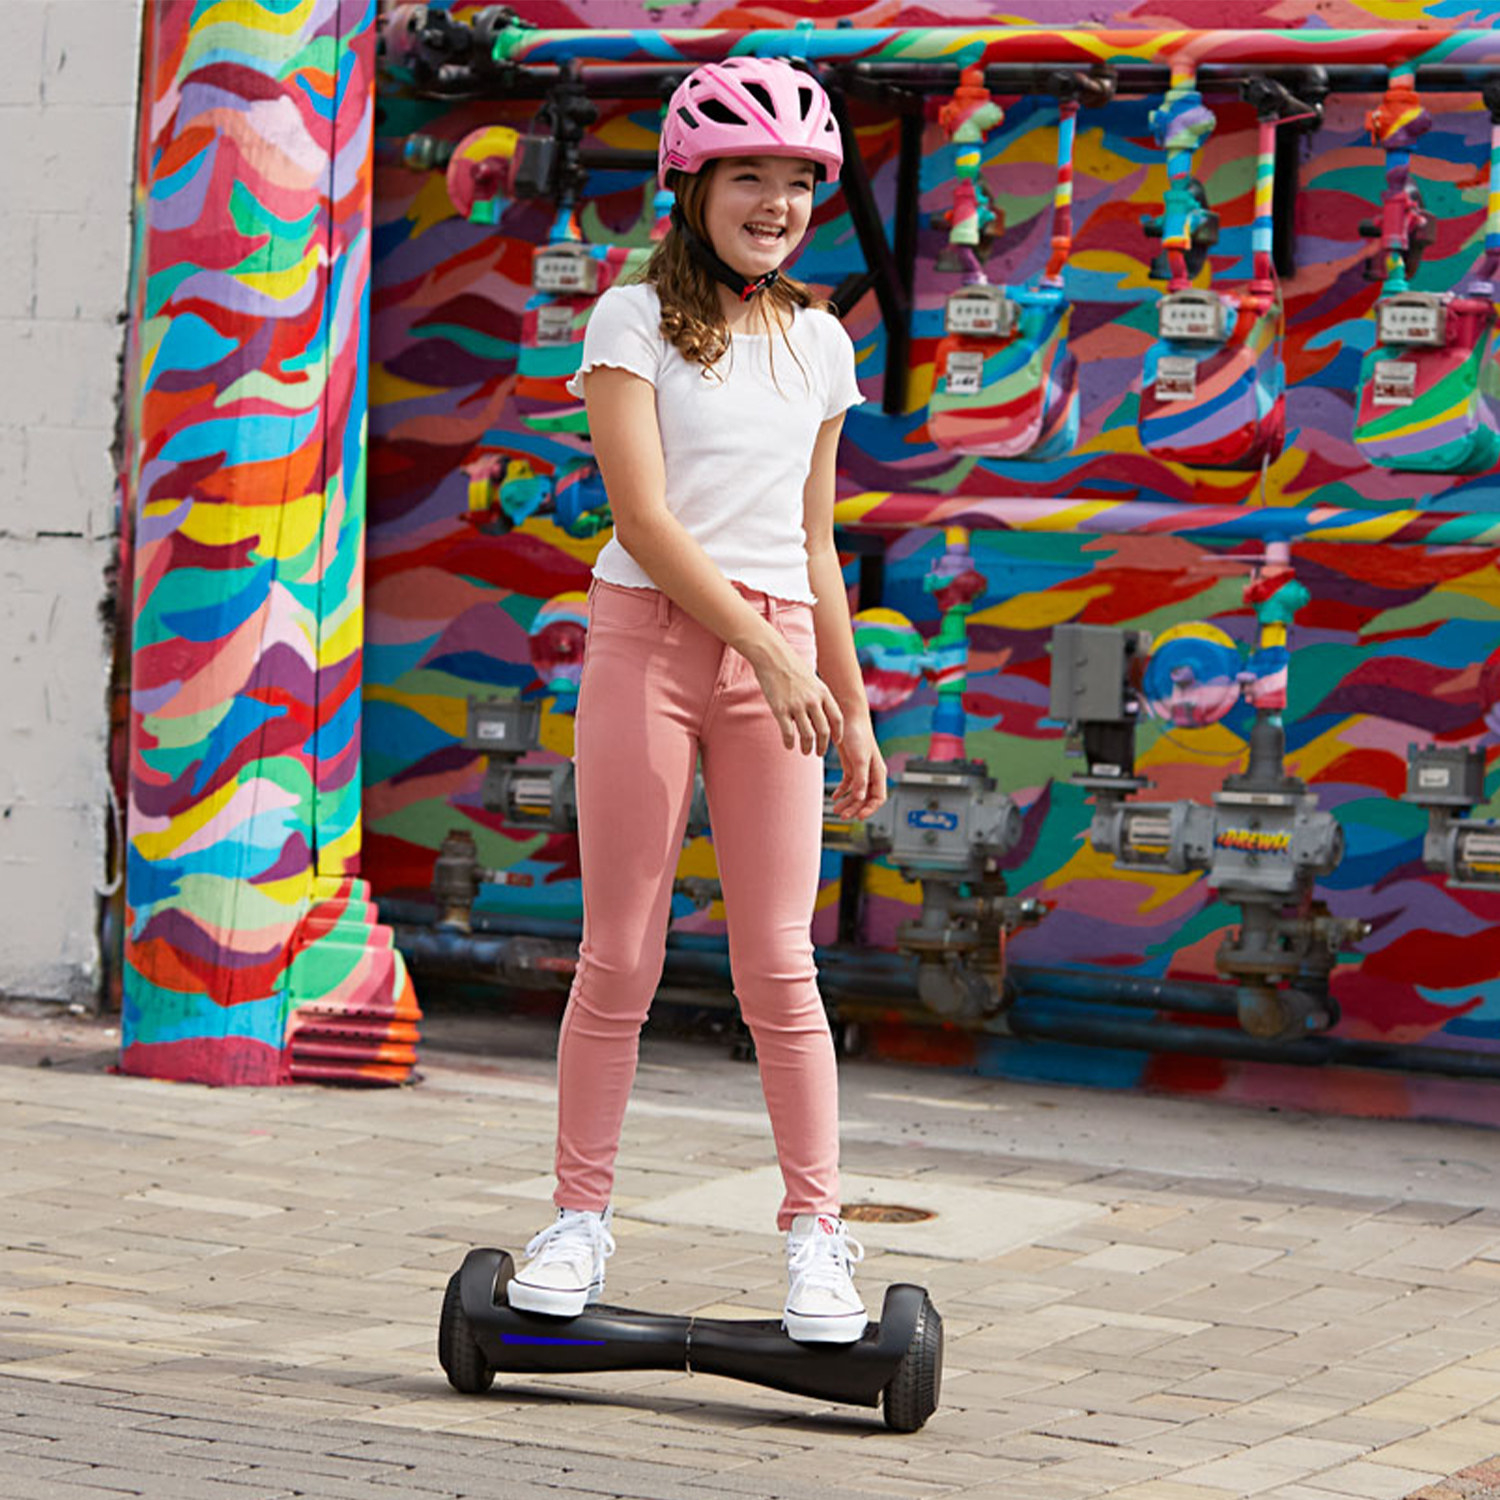 model riding on the hoverboard in black